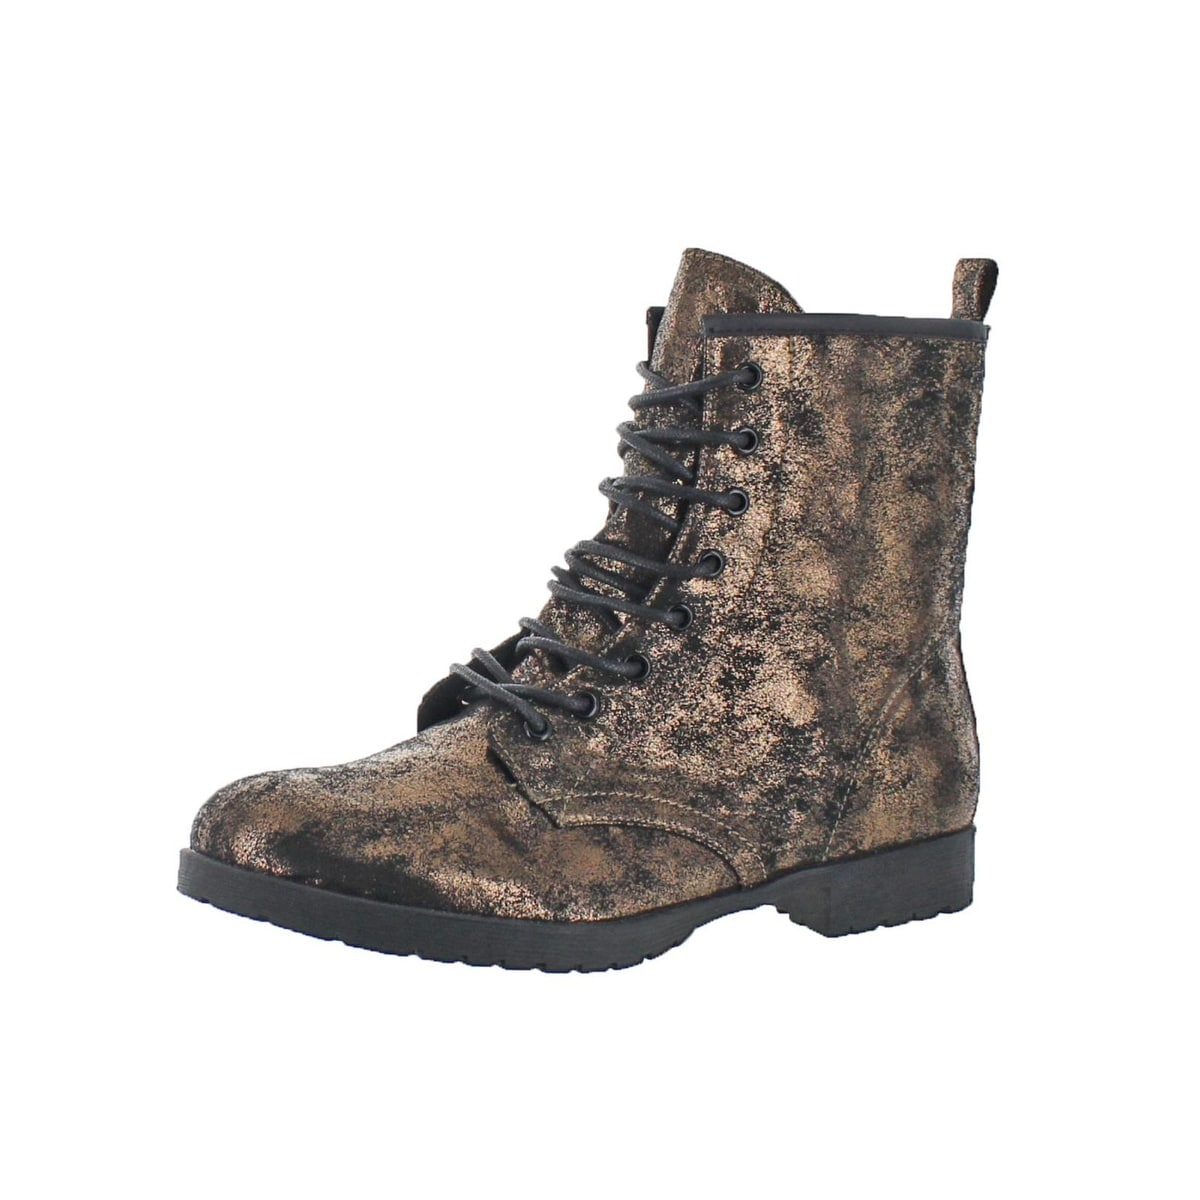 Lights Out Combat Boots Lace Up Casual